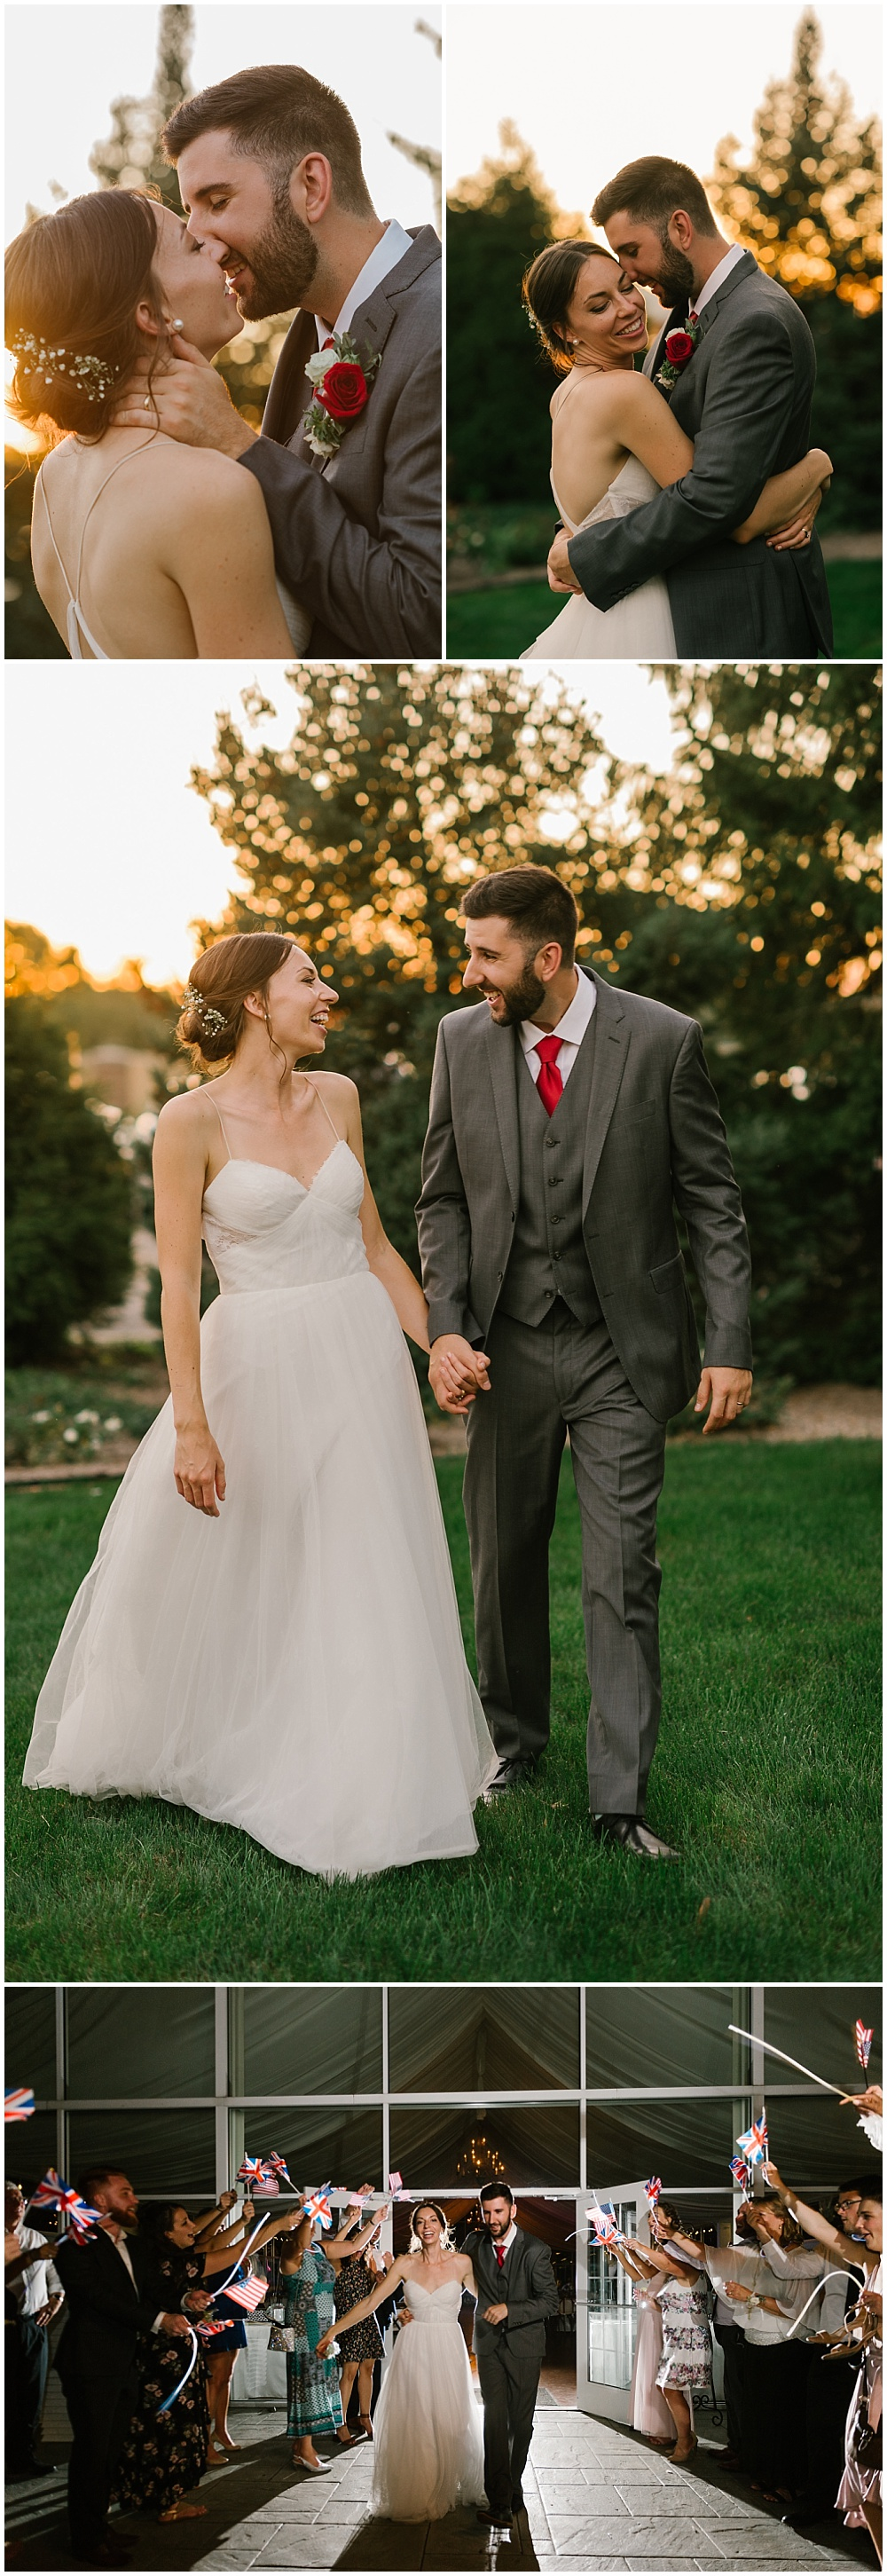 Bride and groom sunset portraits and formal exit with British and American flags Fall garden-inspired wedding at the Ritz Charles Garden Pavilion in Carmel, Indiana | Jessica Dum Wedding Coordination